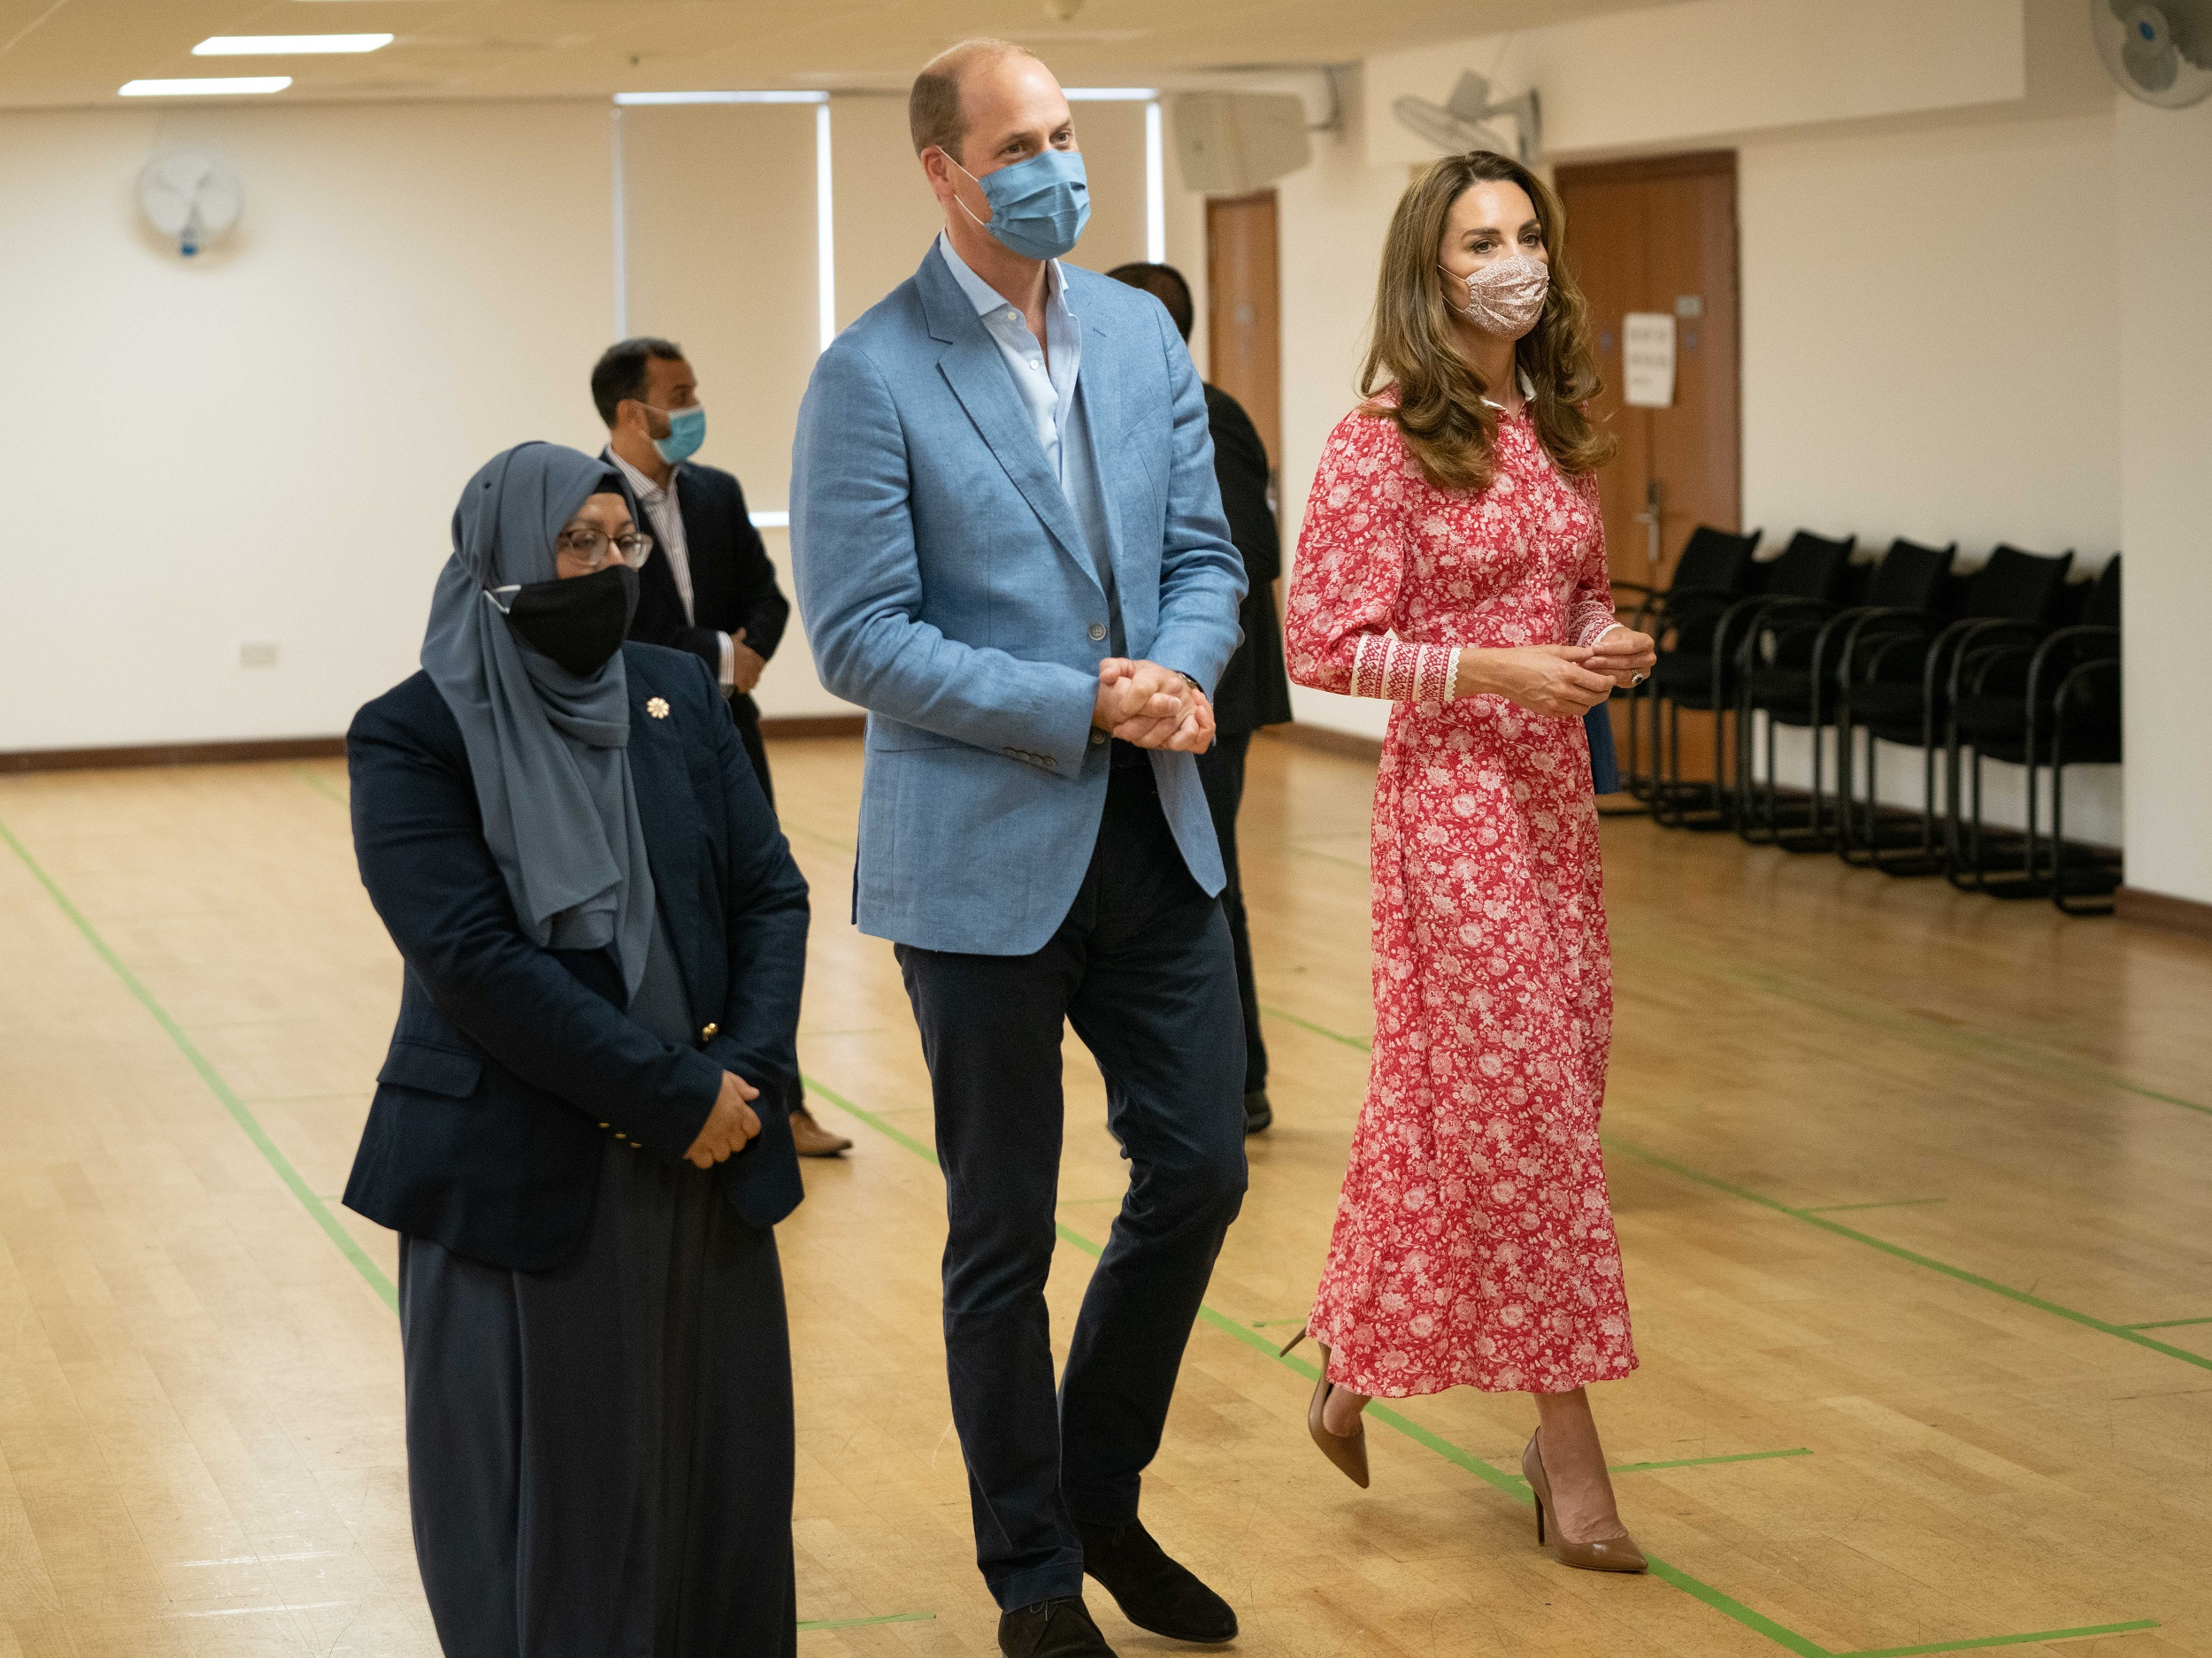 The Duke and Duchess of Cambridge thanked the Muslim community for their help during COVID-19